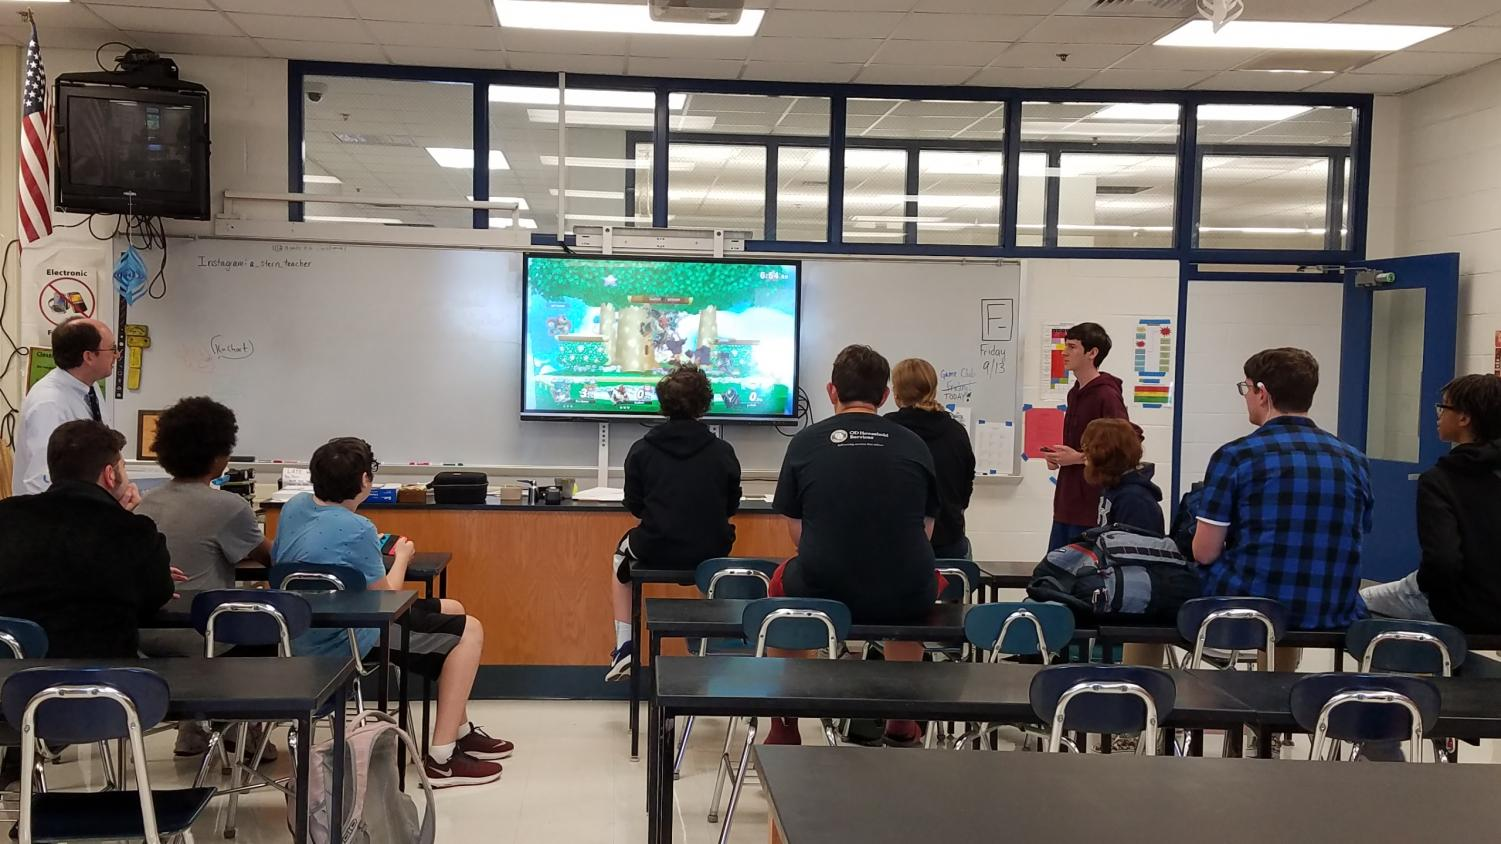 A group of students participate in a Super Smash Bros tournament on a new interactive whiteboard.